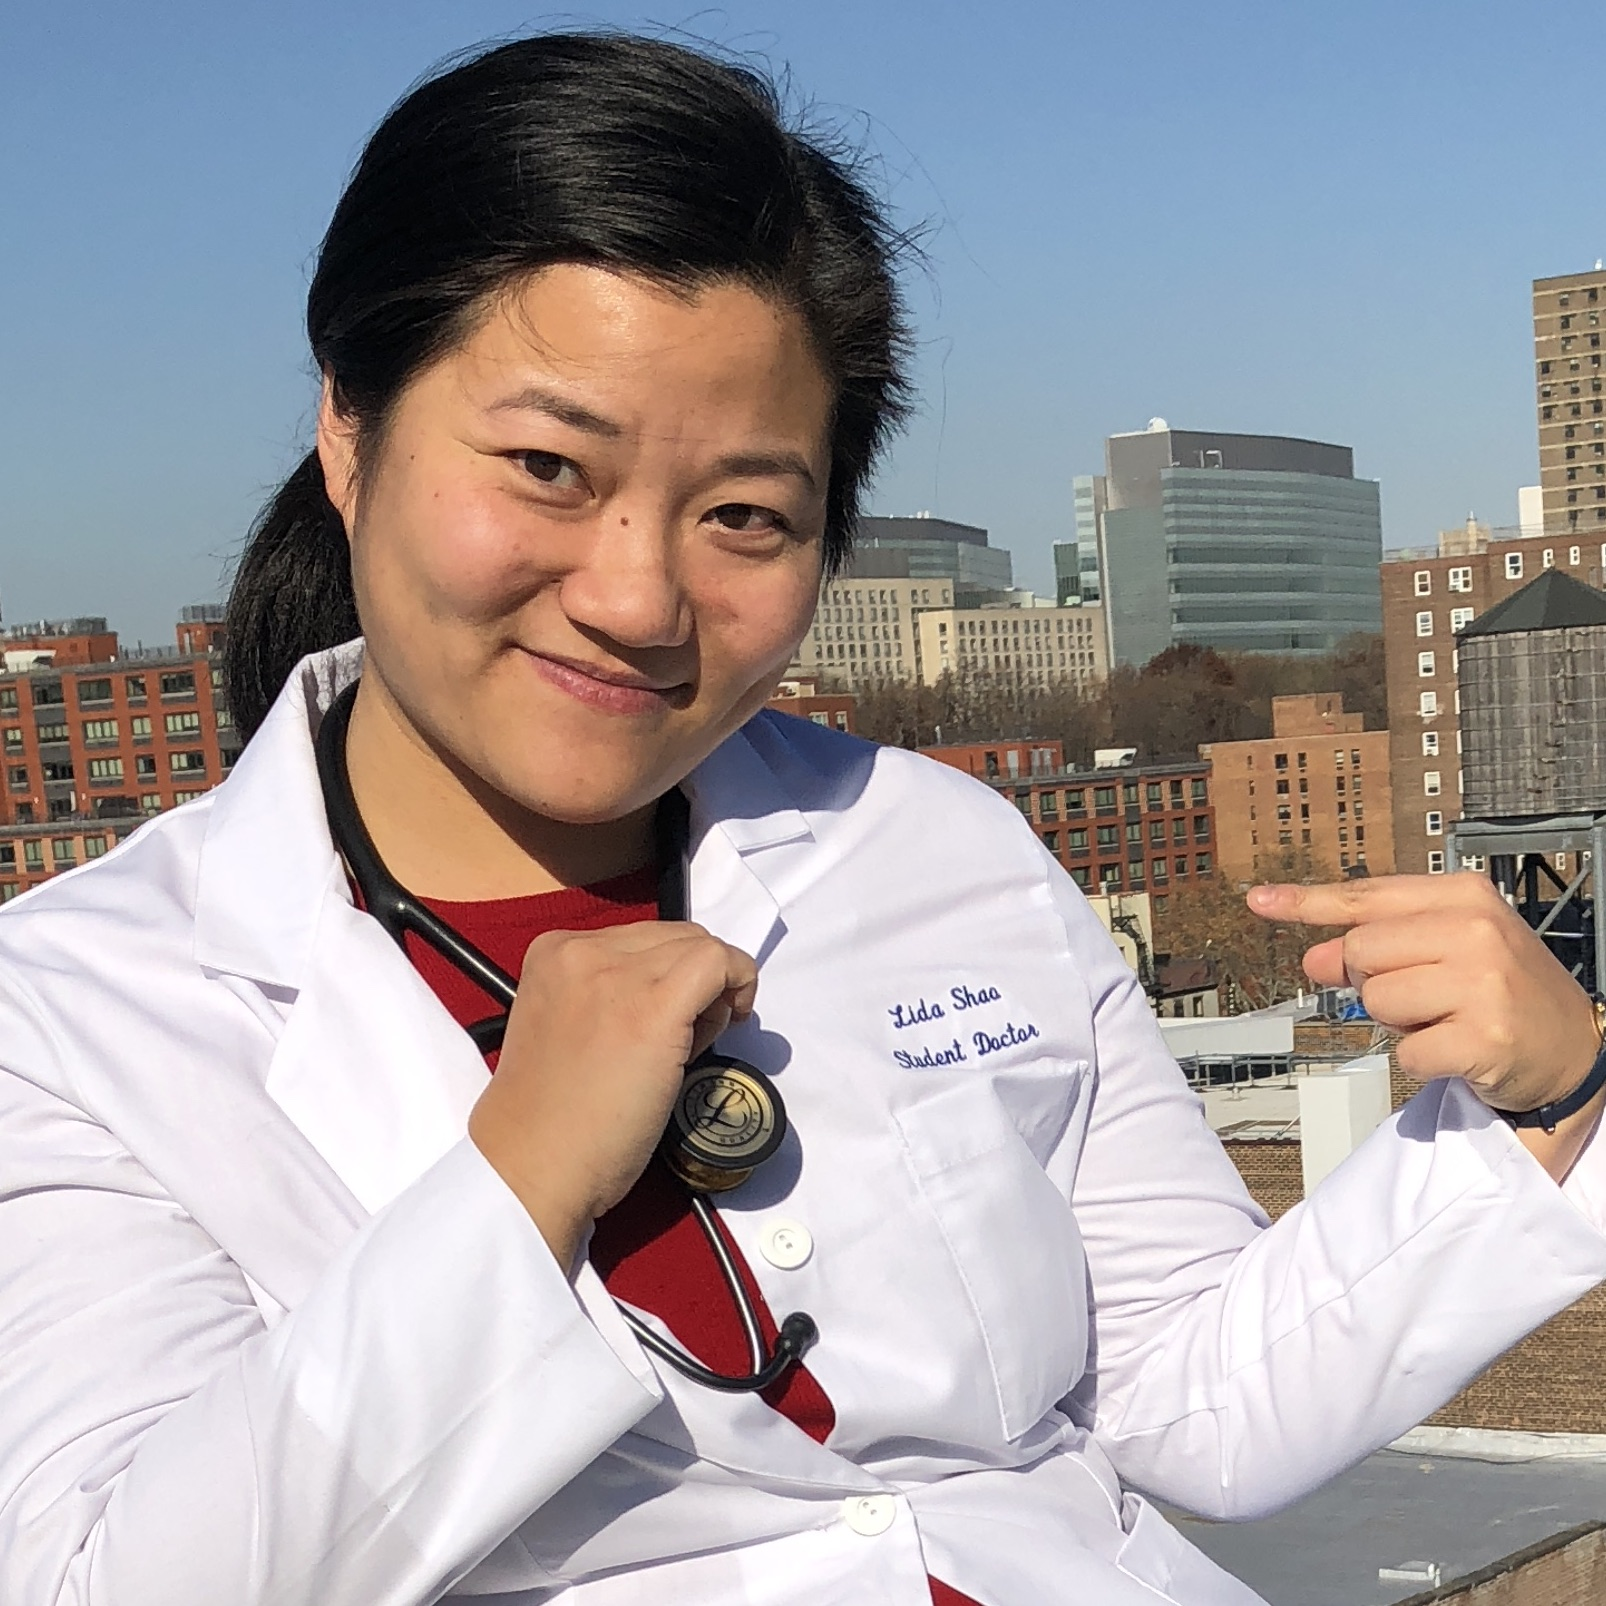 Image description: Lida, hair in a ponytail, wearing a white doctor's coat pointing to her name embroidered onto the chest, sitting in front of a city skyline.